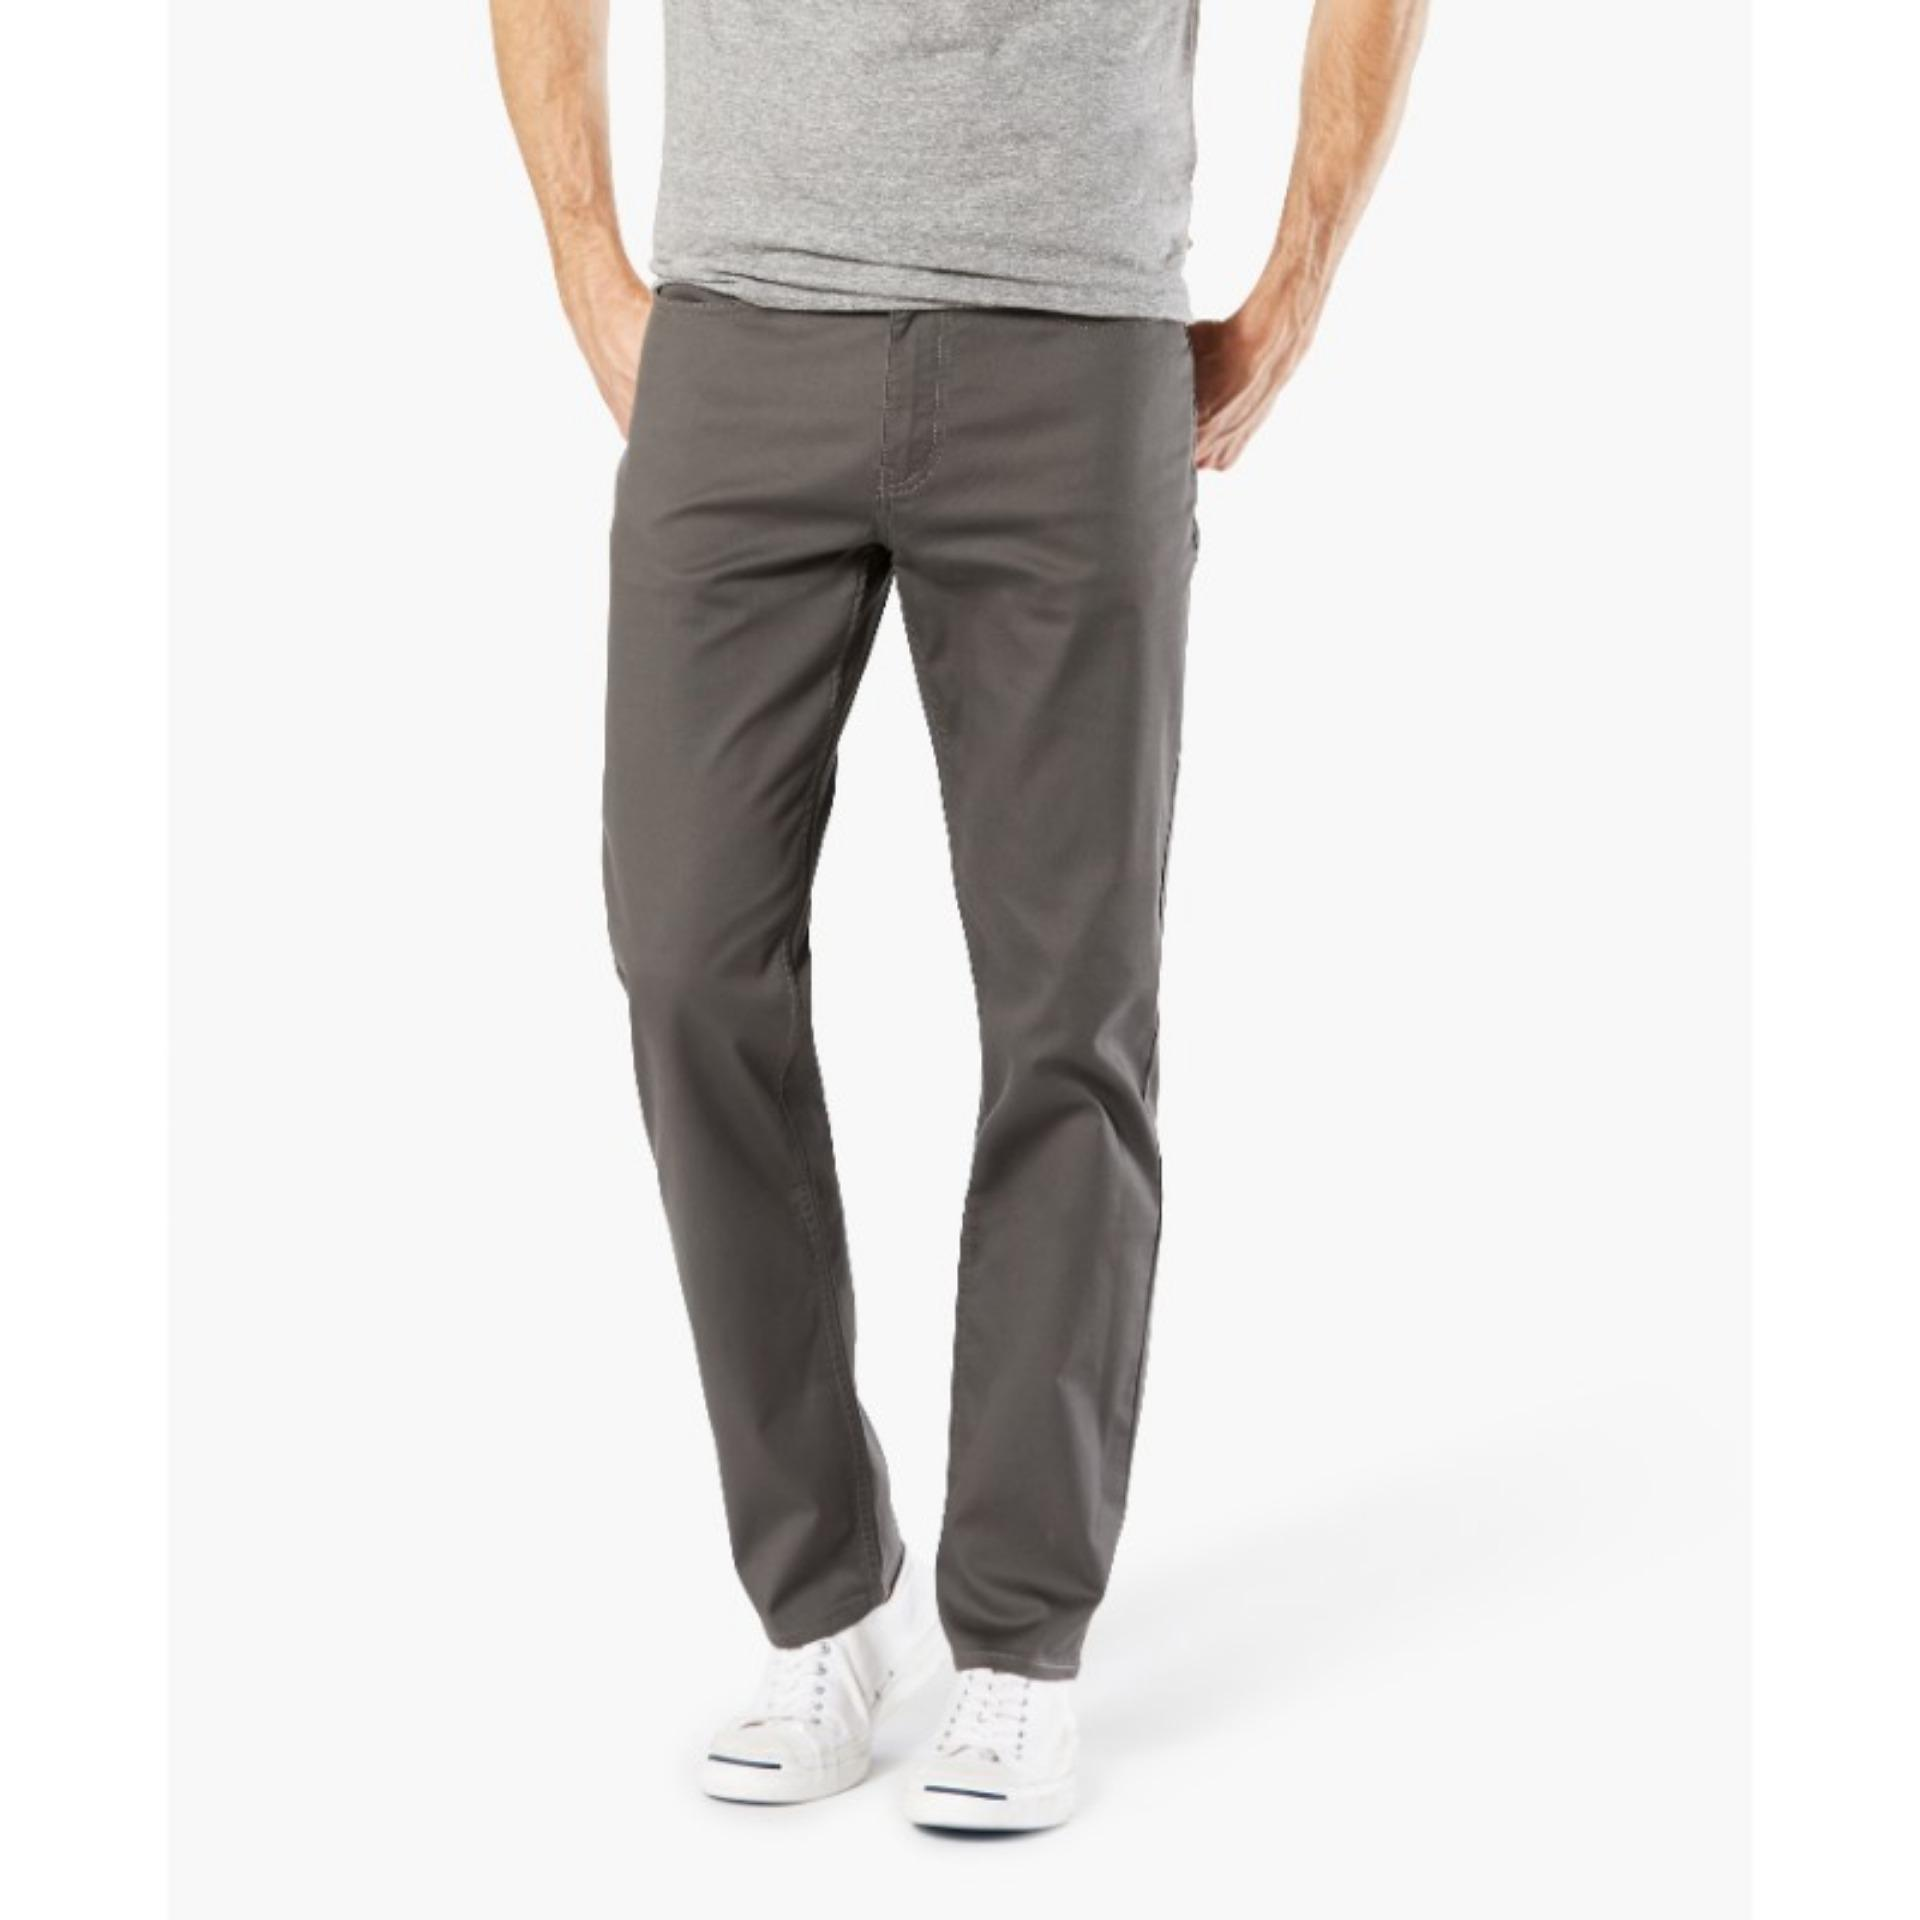 Price Dockers Standard Jean Cut Slim Tapered Pants Storm On Singapore